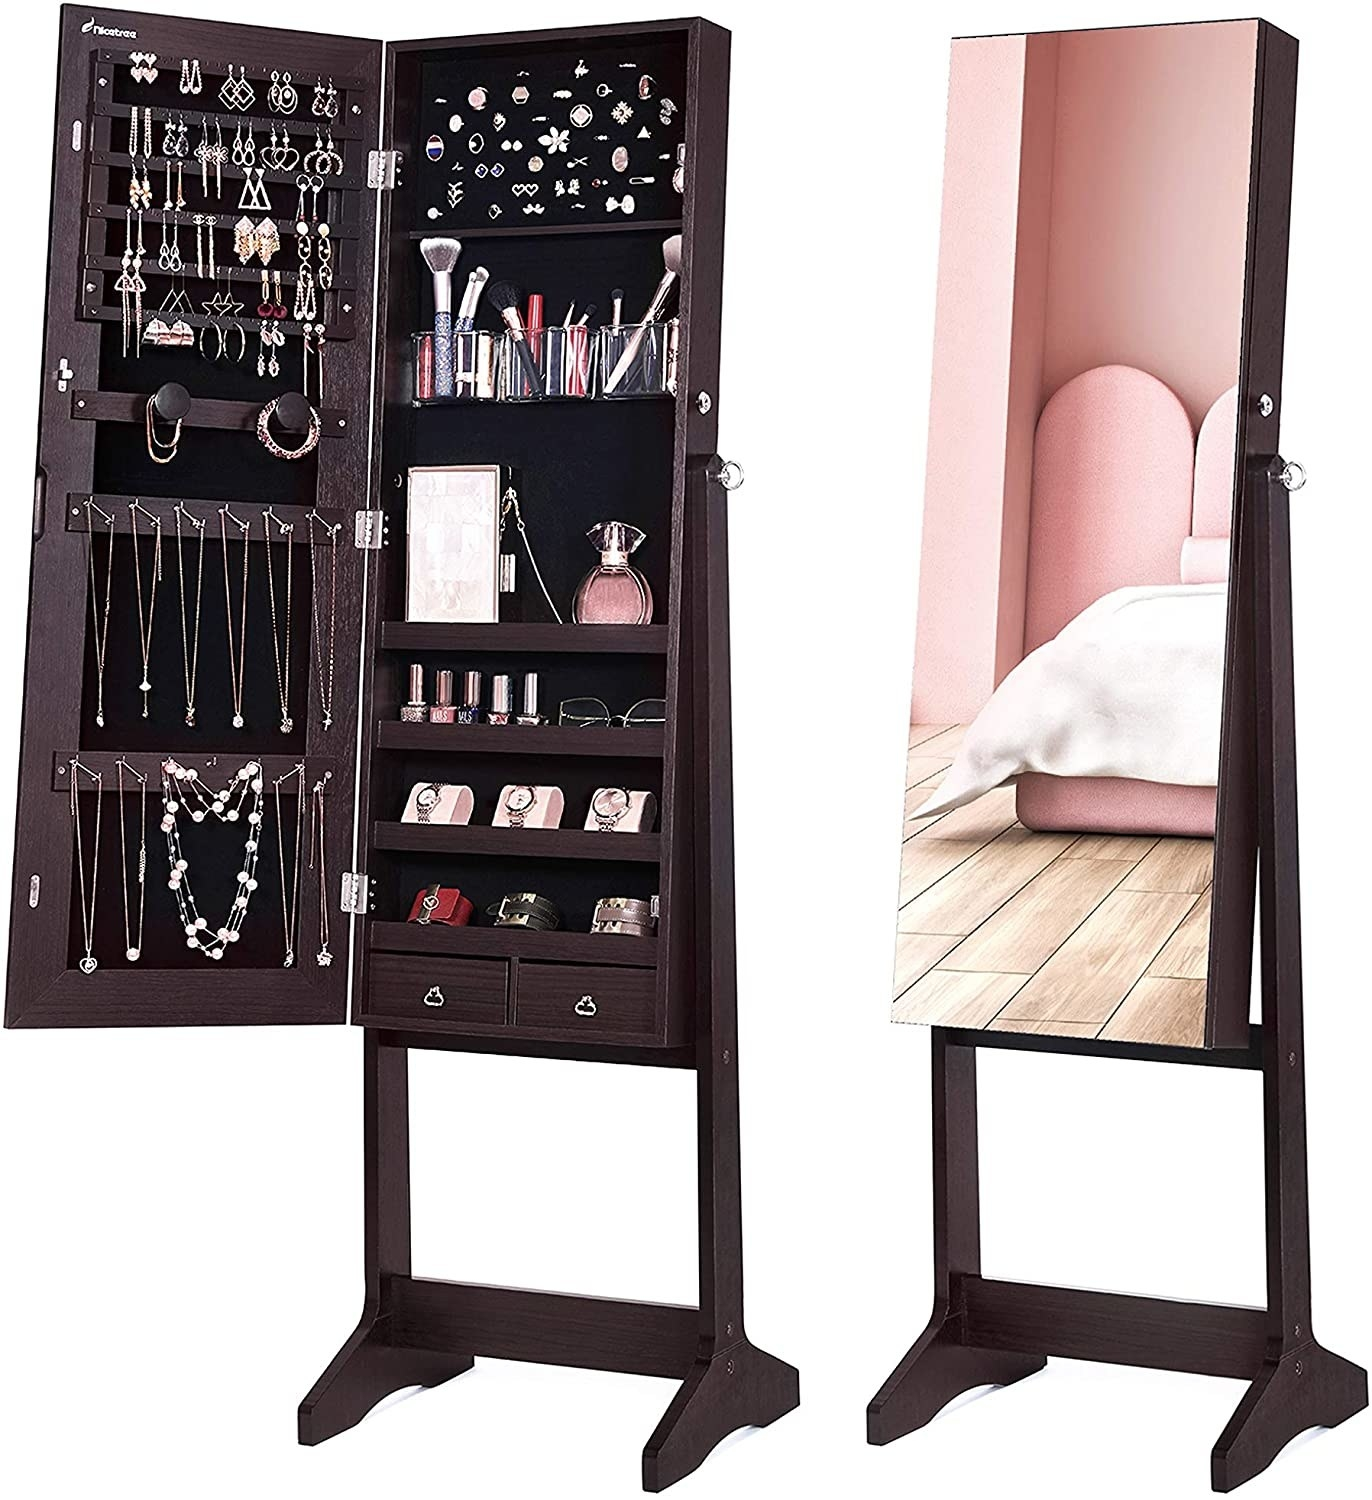 standing mirror with the inside revealing jewelry storage